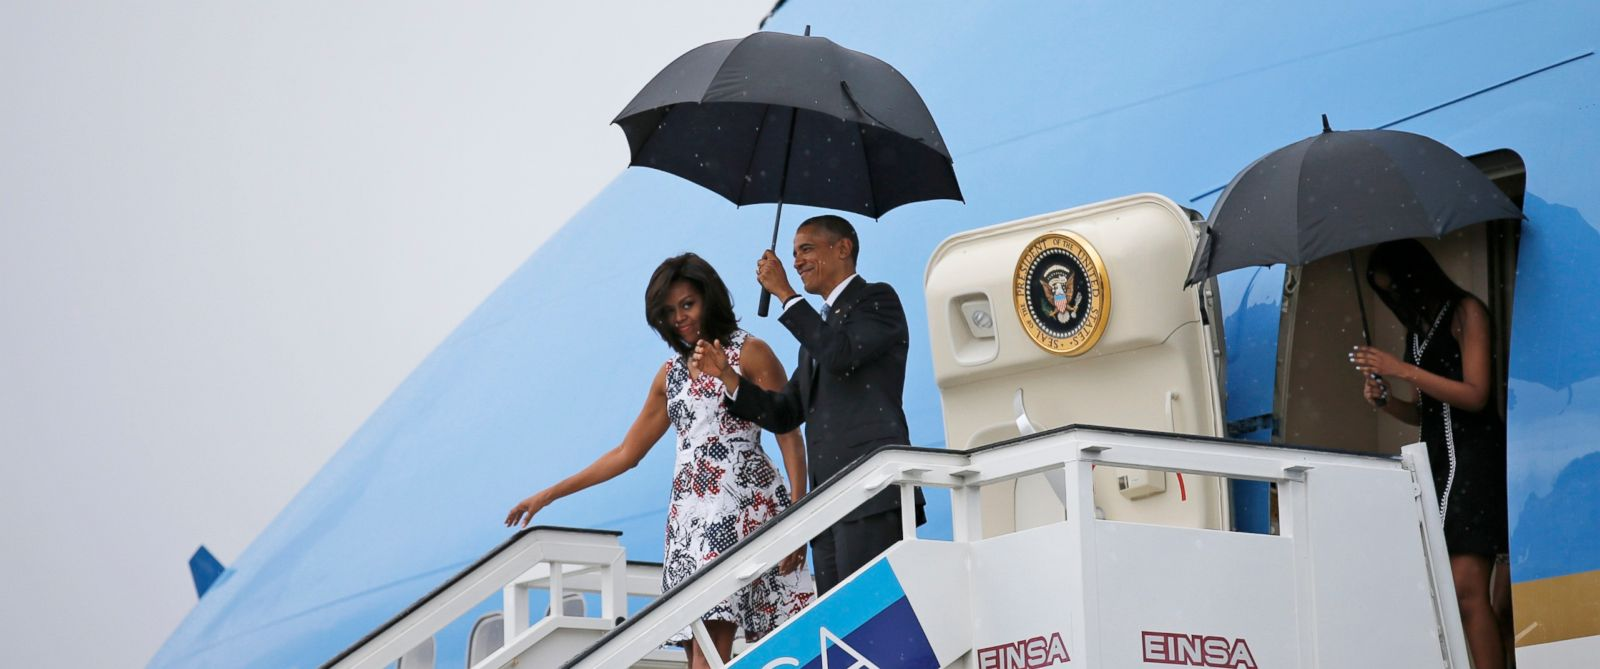 PHOTO: Barack Obama and Michelle exit Air Force One as they arrive at Havanas international airport for a three-day trip, March 20, 2016.